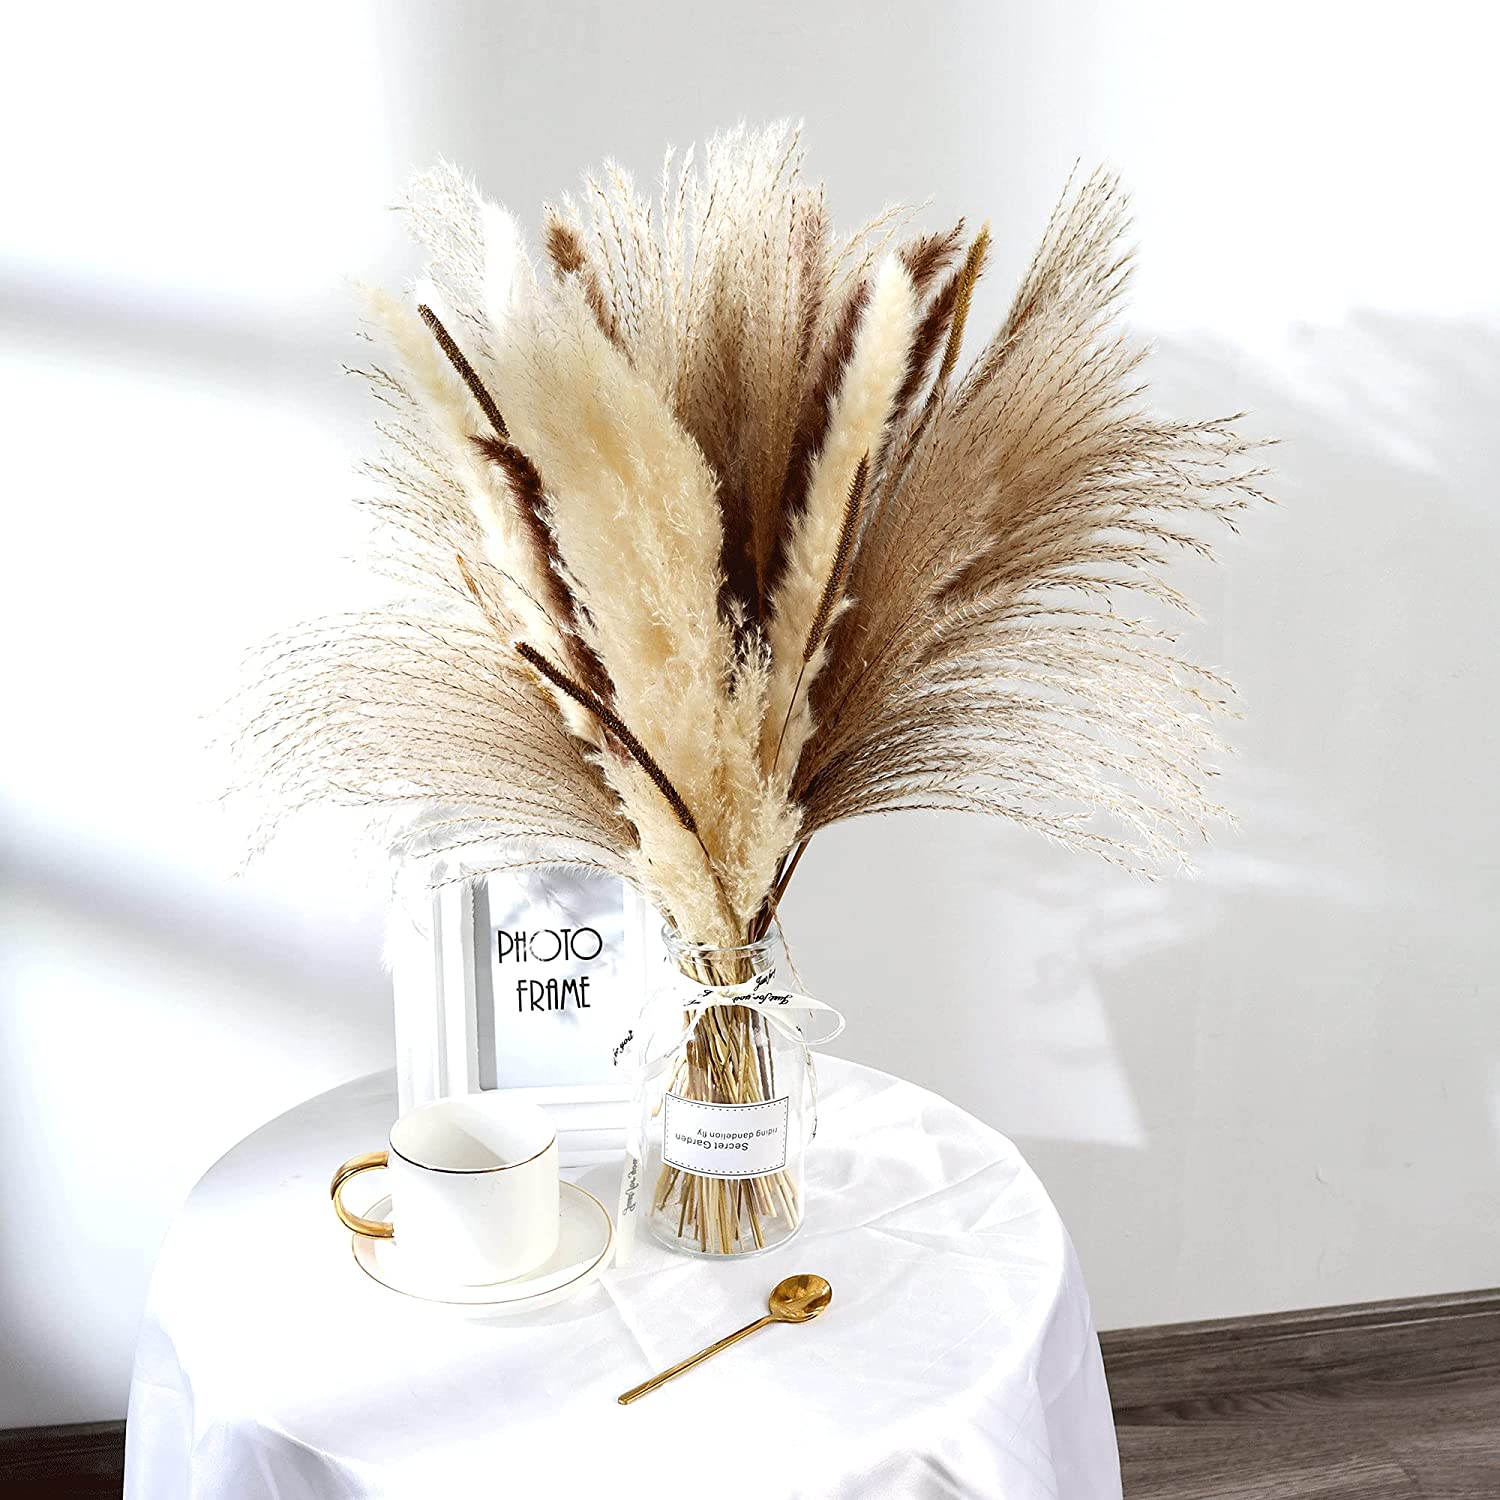 65 Pcs Pampas Grass, Natural Dried Pampas Grass Decor, Dried Plants Flower Bouquet for Pampas Grass Vase, Boho Home Decor, Photography, Wedding, Events, Office Decoration(17 inches)